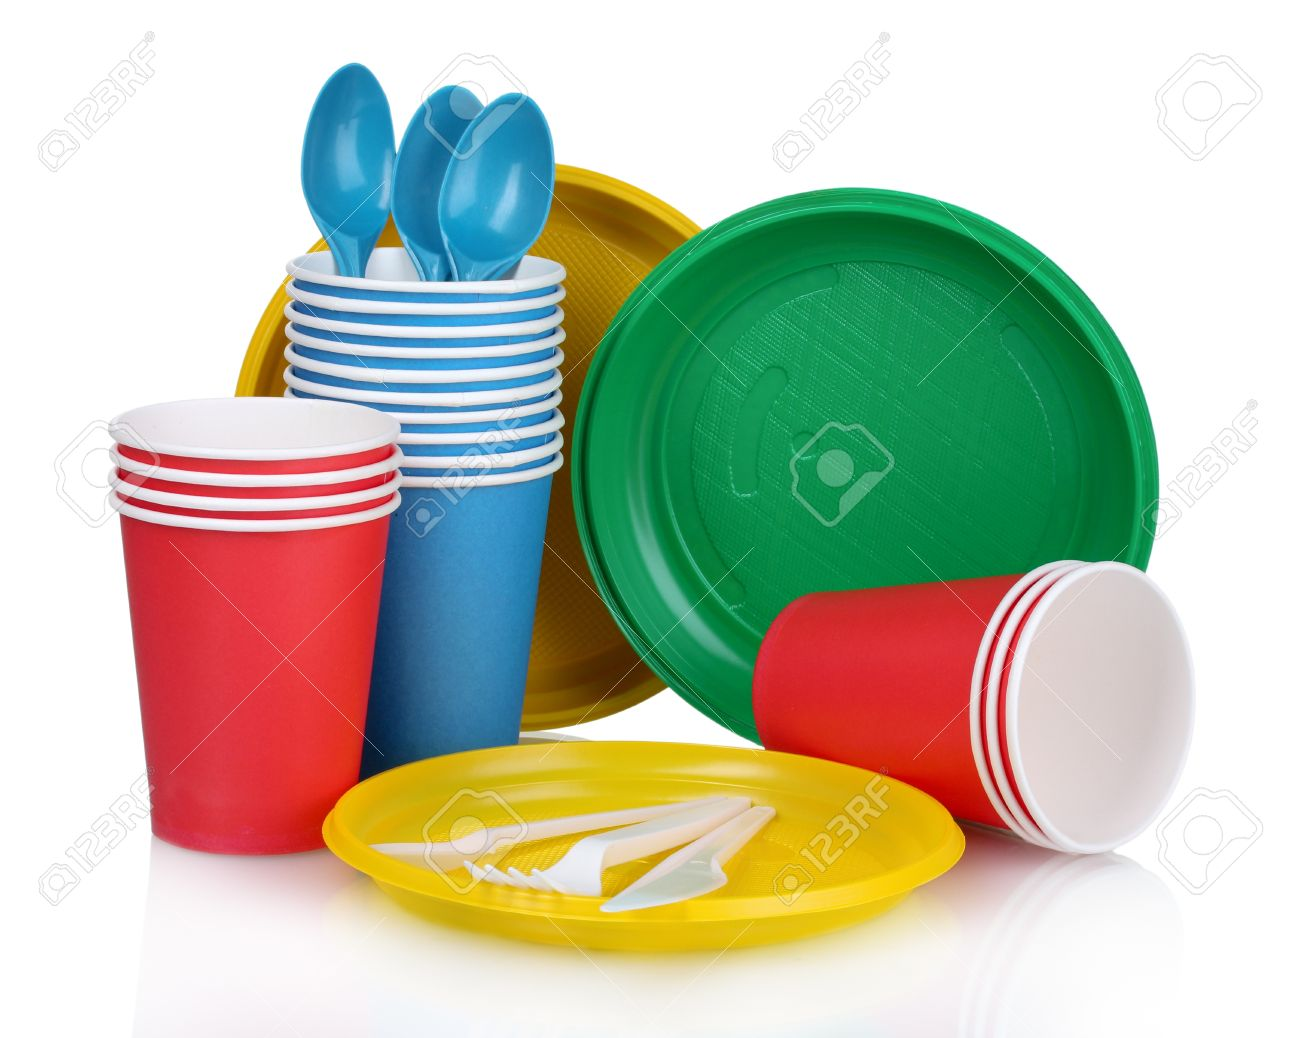 bright plastic tableware isolated on white Stock Photo - 10753711  sc 1 st  123RF.com & Bright Plastic Tableware Isolated On White Stock Photo Picture And ...